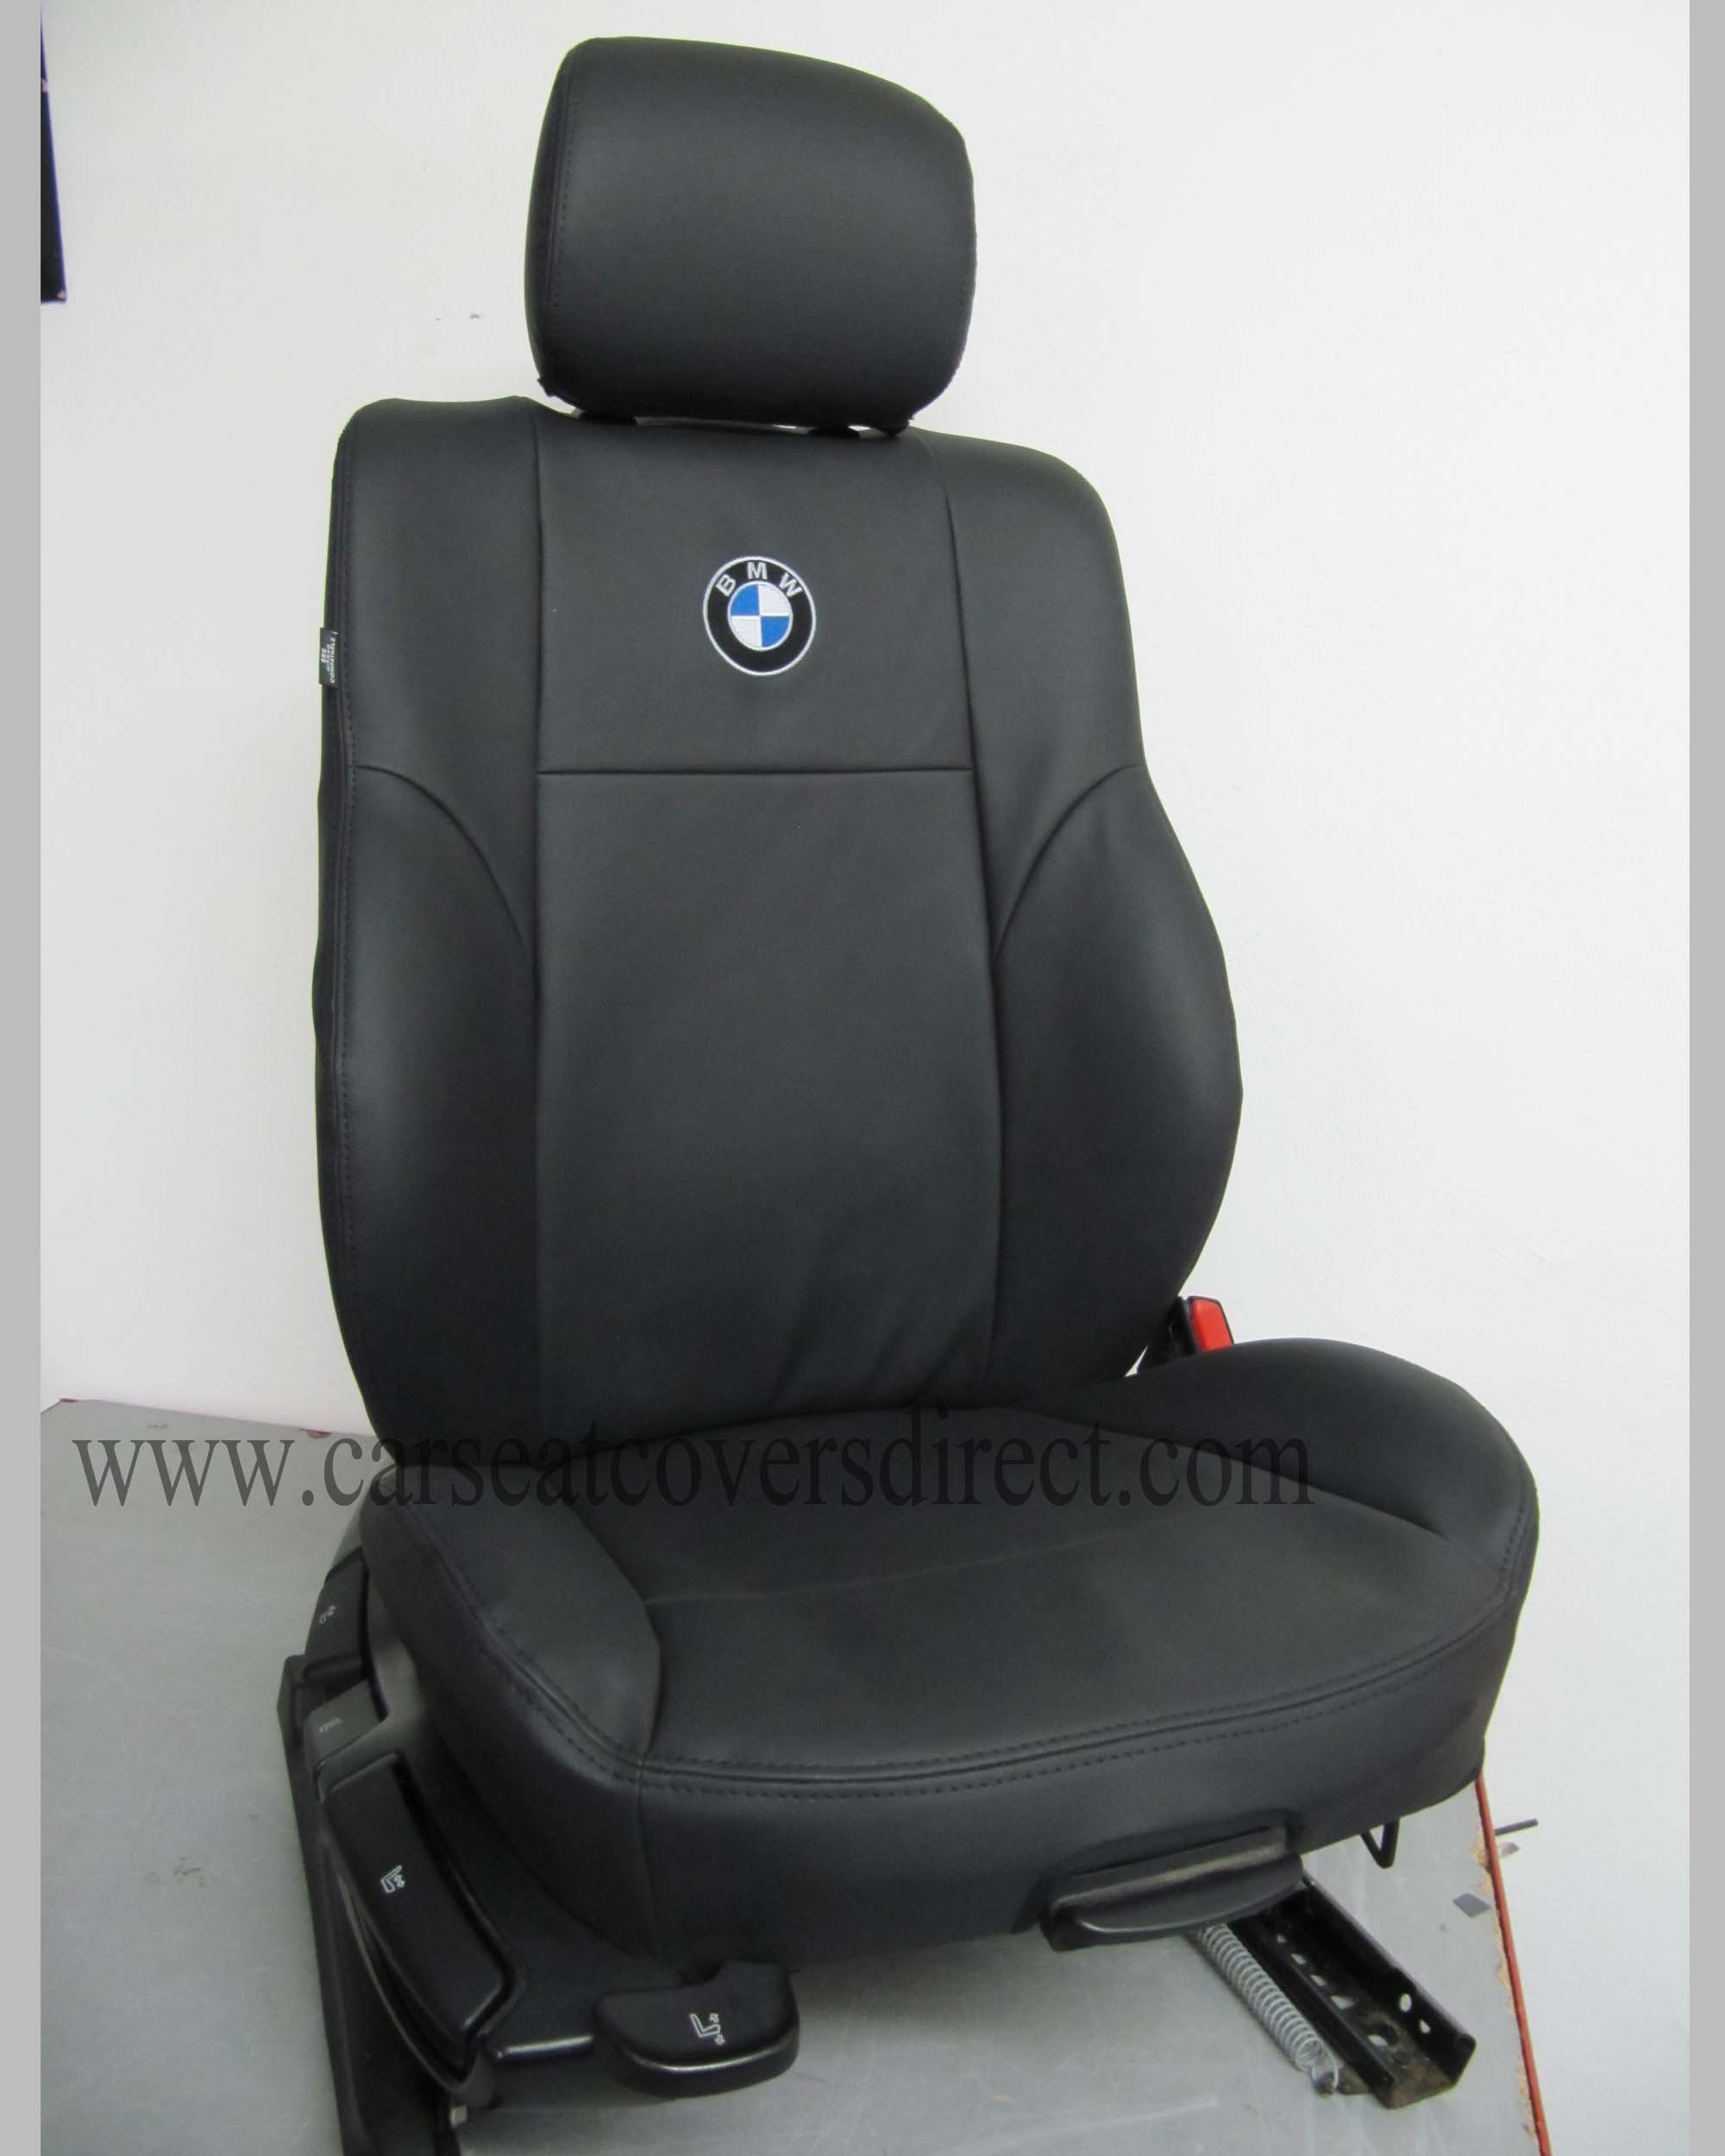 exciting bmw car seat covers aratorn sport cars. Black Bedroom Furniture Sets. Home Design Ideas